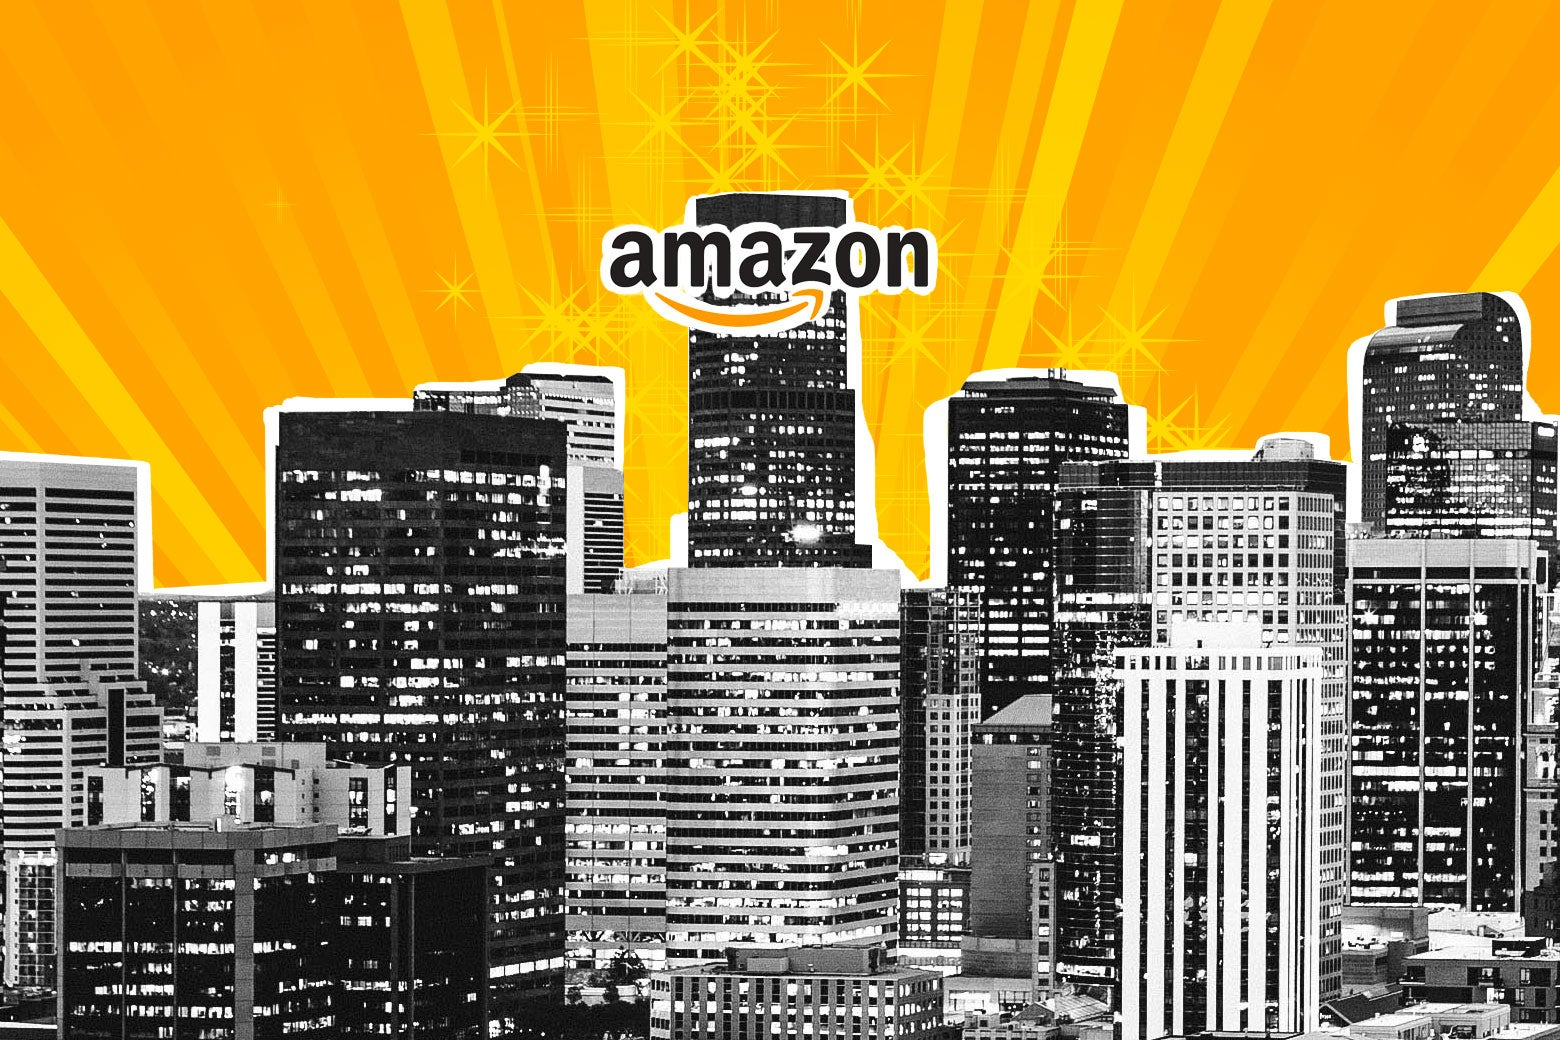 Light shines from the skyline of a city with a building labeled Amazon.